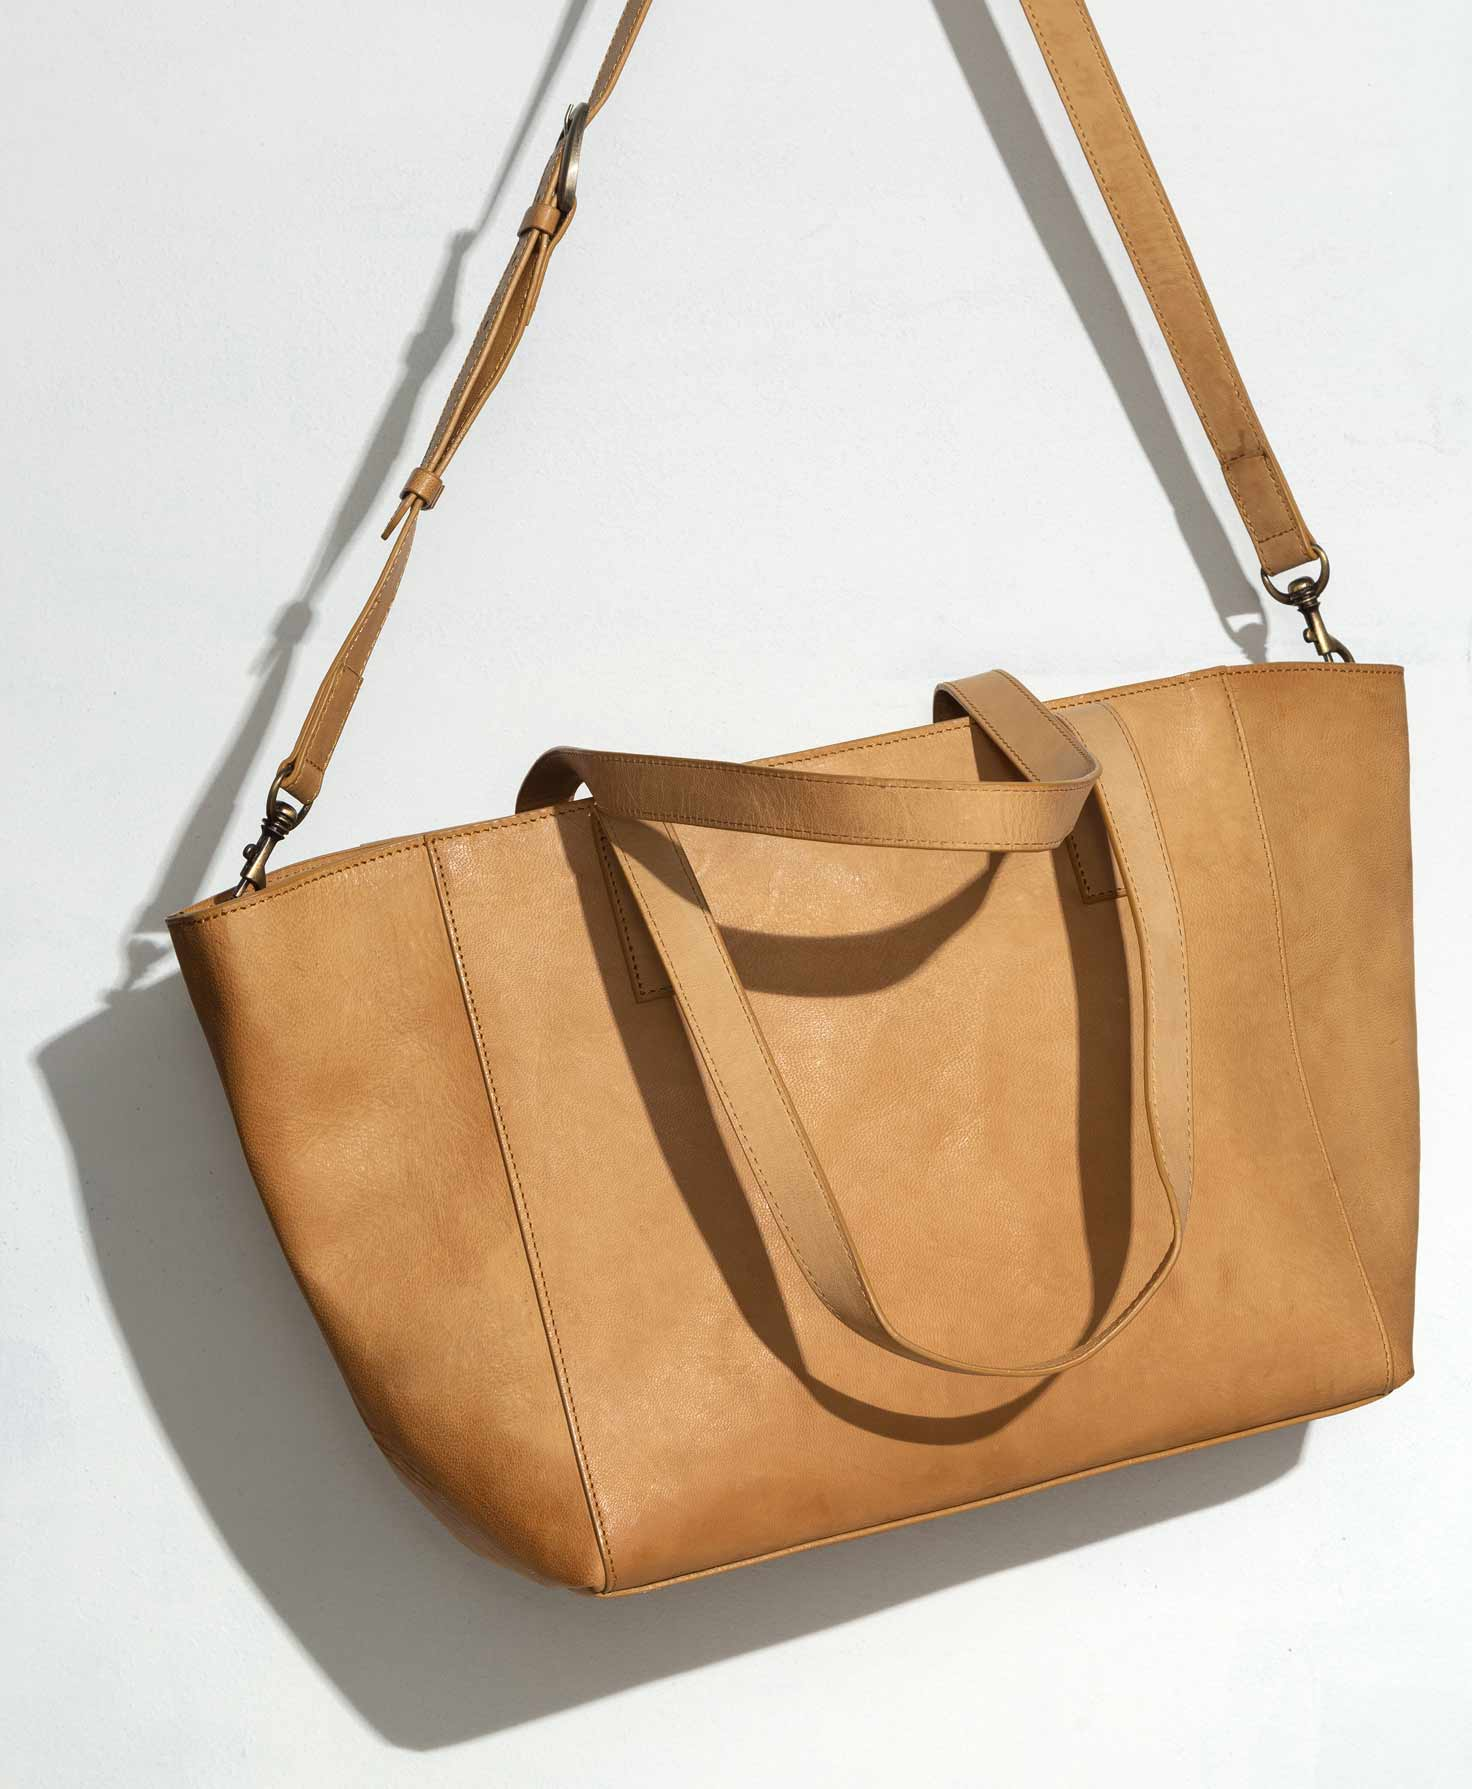 The City Tote is shown hanging against a white wall. It is a wide, roughly rectangular tote that is wider than it is tall. It is made of smooth, light caramel colored leather. There are two short leather handles in the center of the bag. On the edges of the bag, bronze hardware clips connect a long leather strap that can be adjusted or removed. The bag has a zip closure along the top.